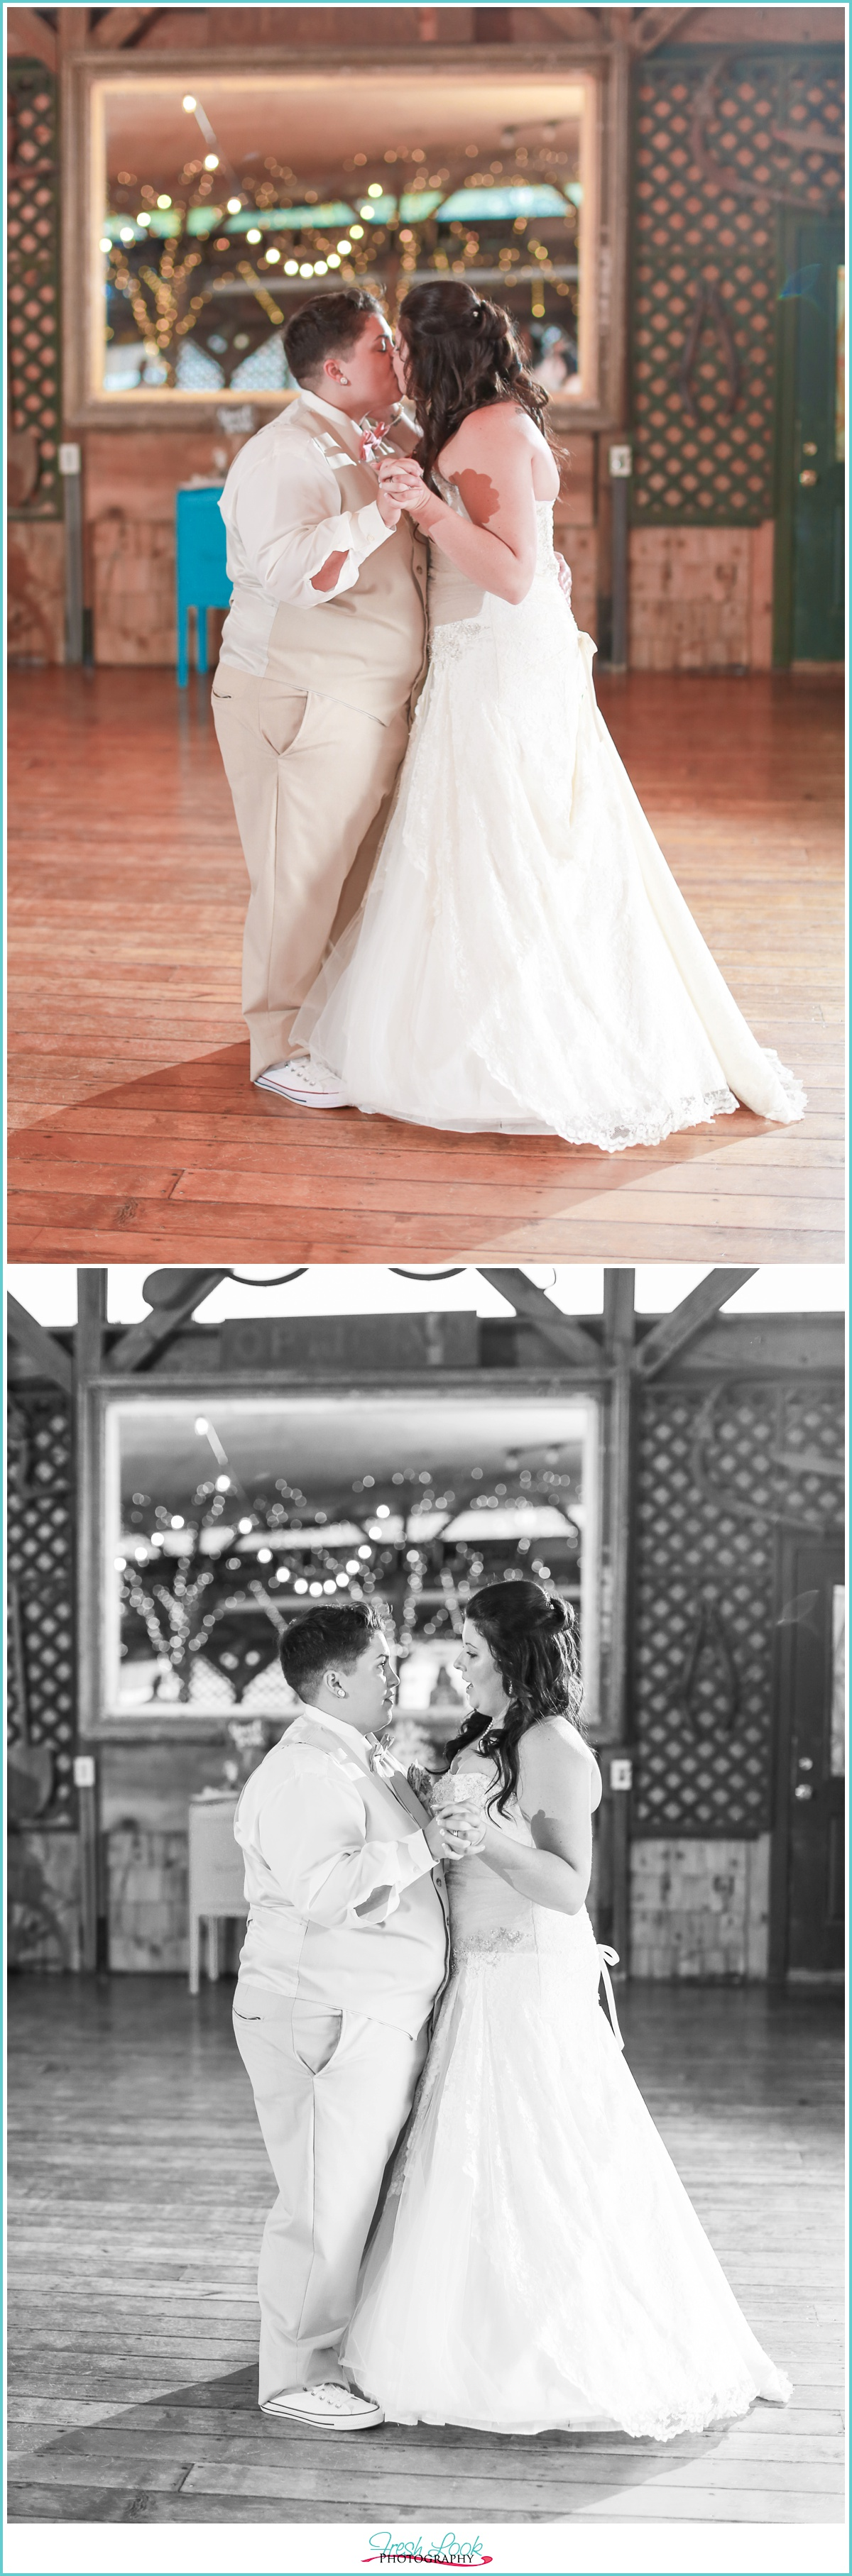 two brides dancing at the wedding